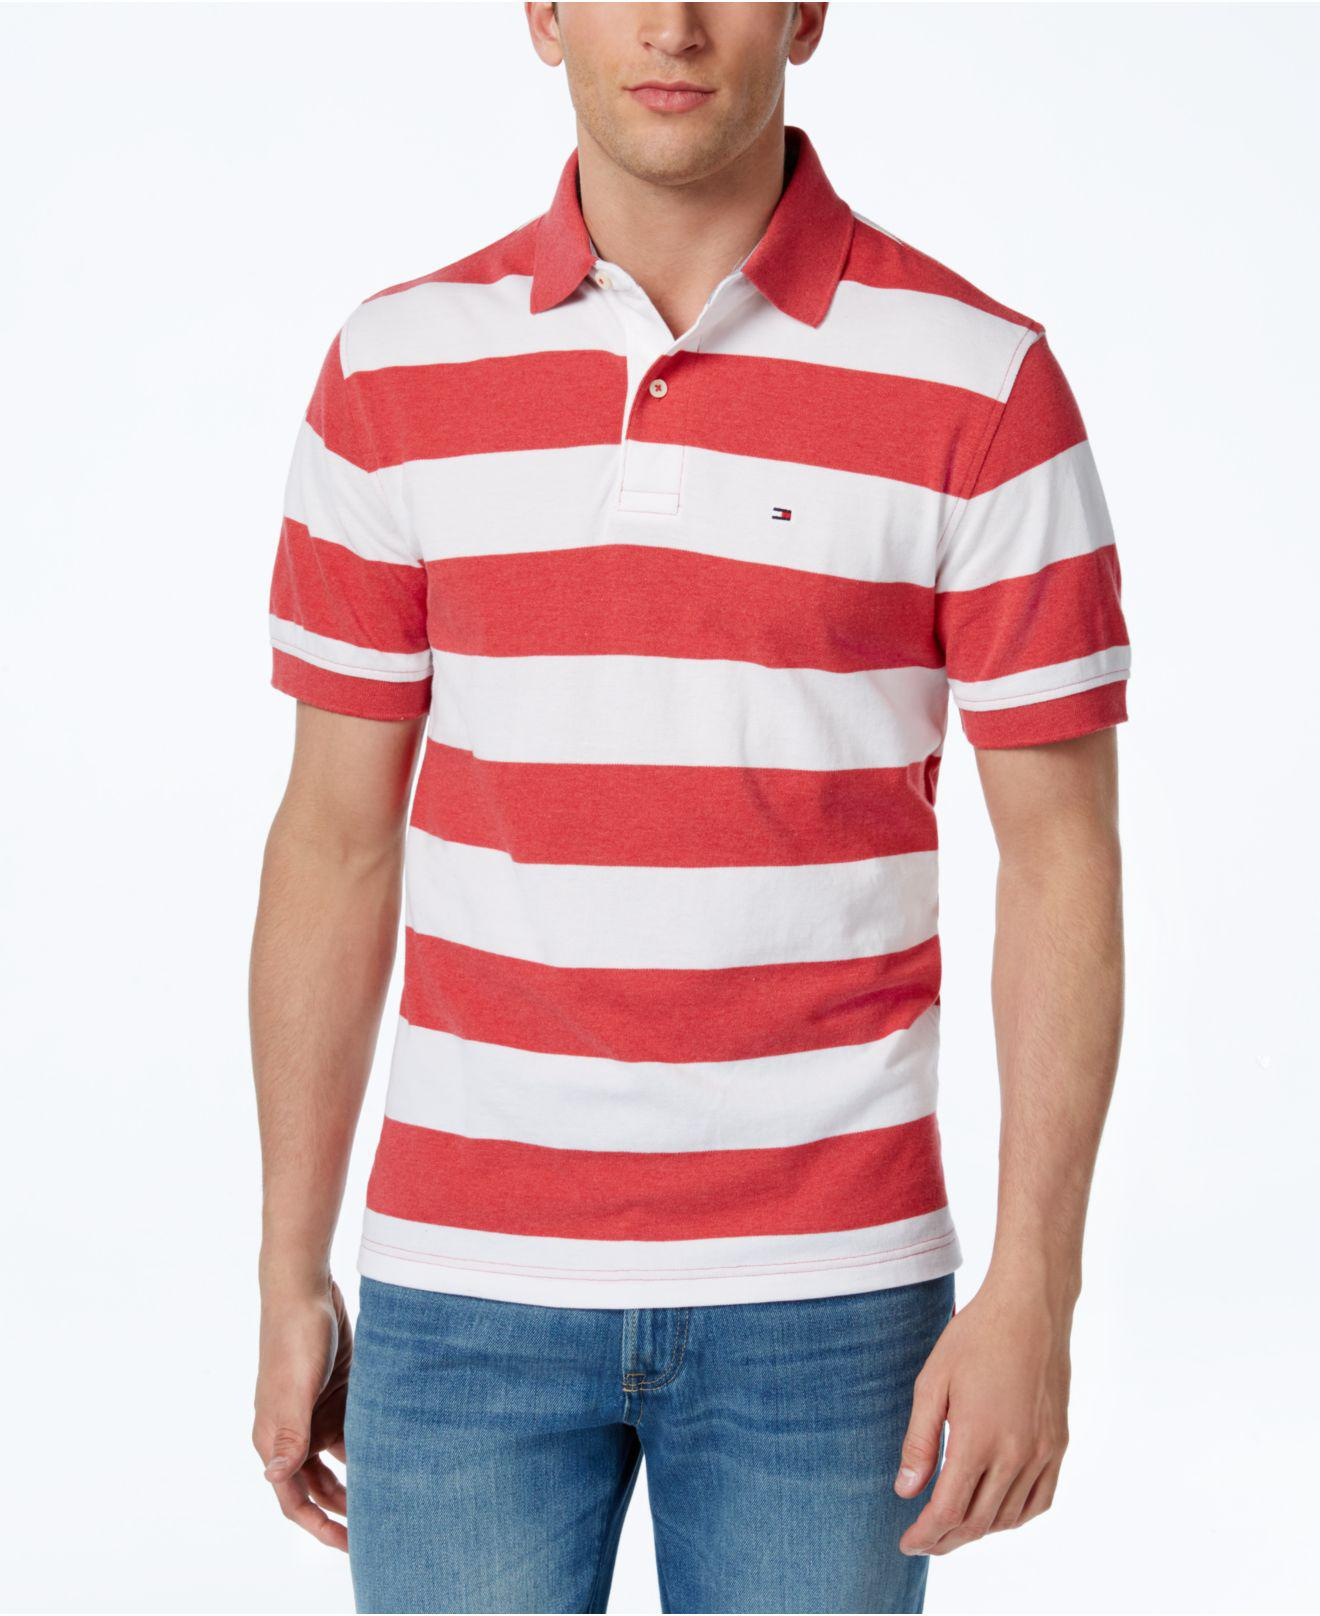 d07a31a5b Tommy Hilfiger Logan Striped Rugby Polo Shirt in Red for Men - Lyst